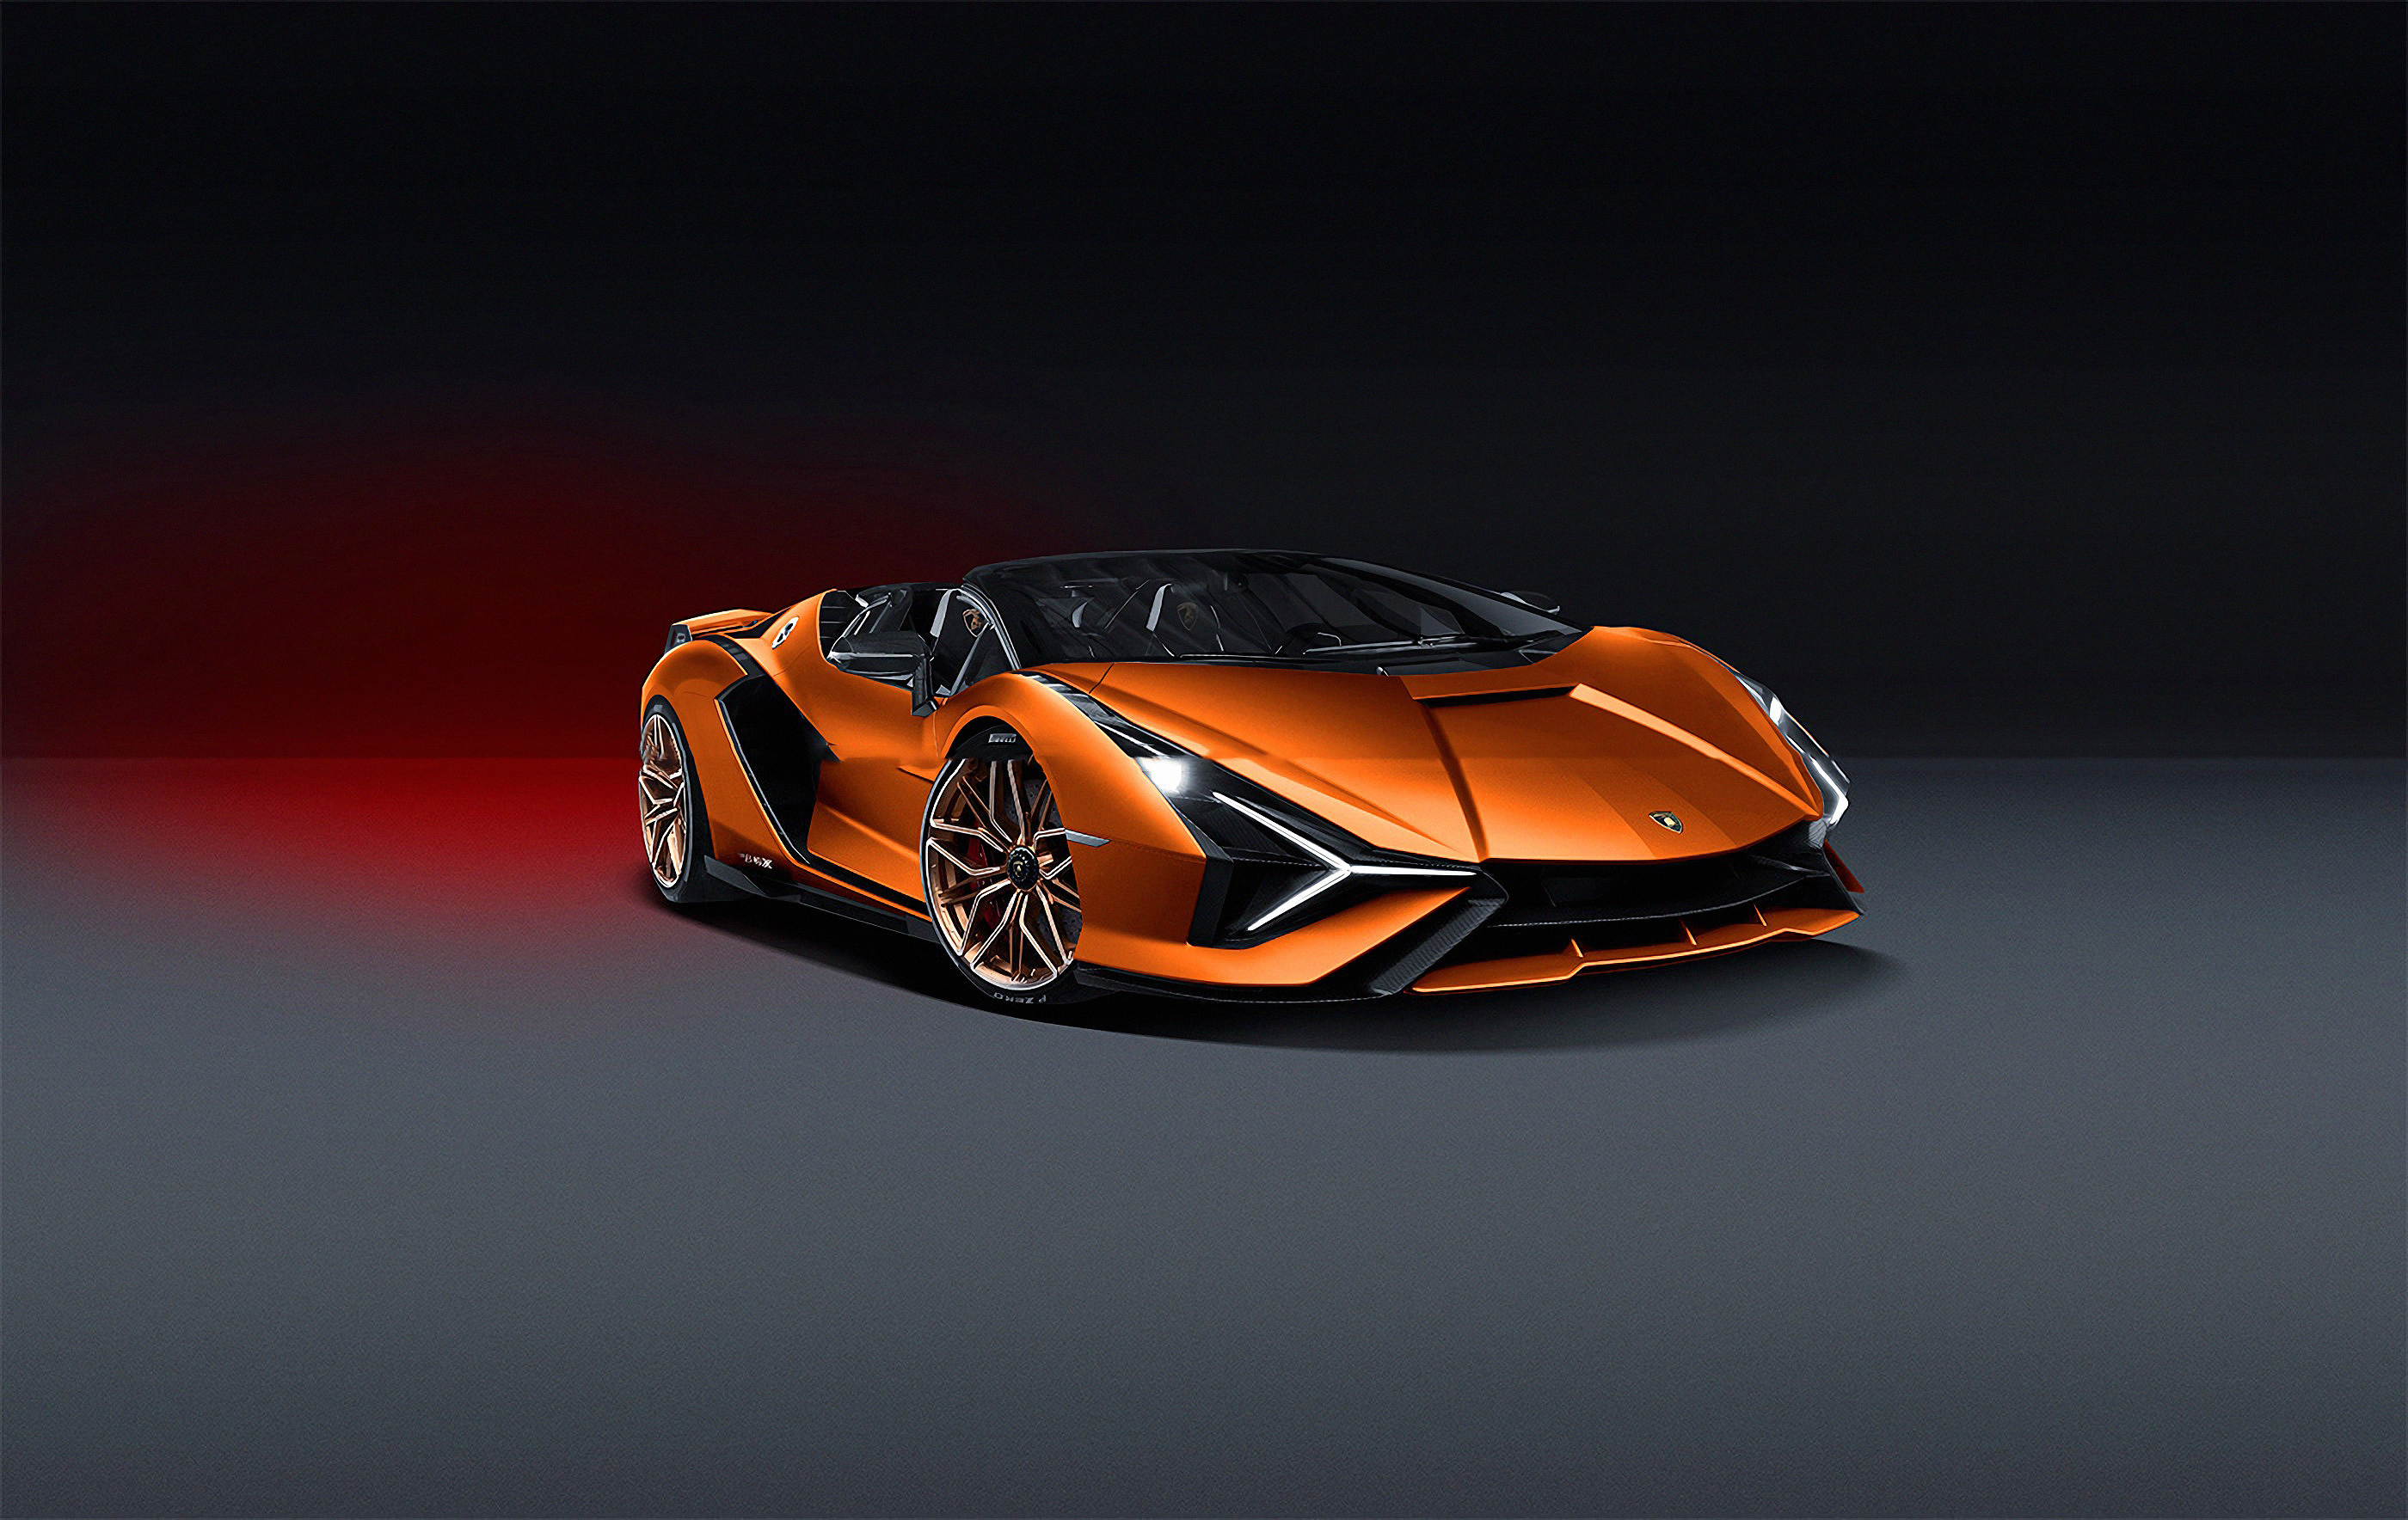 Lamborghini Sian 2019 Front View 4k, HD Cars, 4k Wallpapers